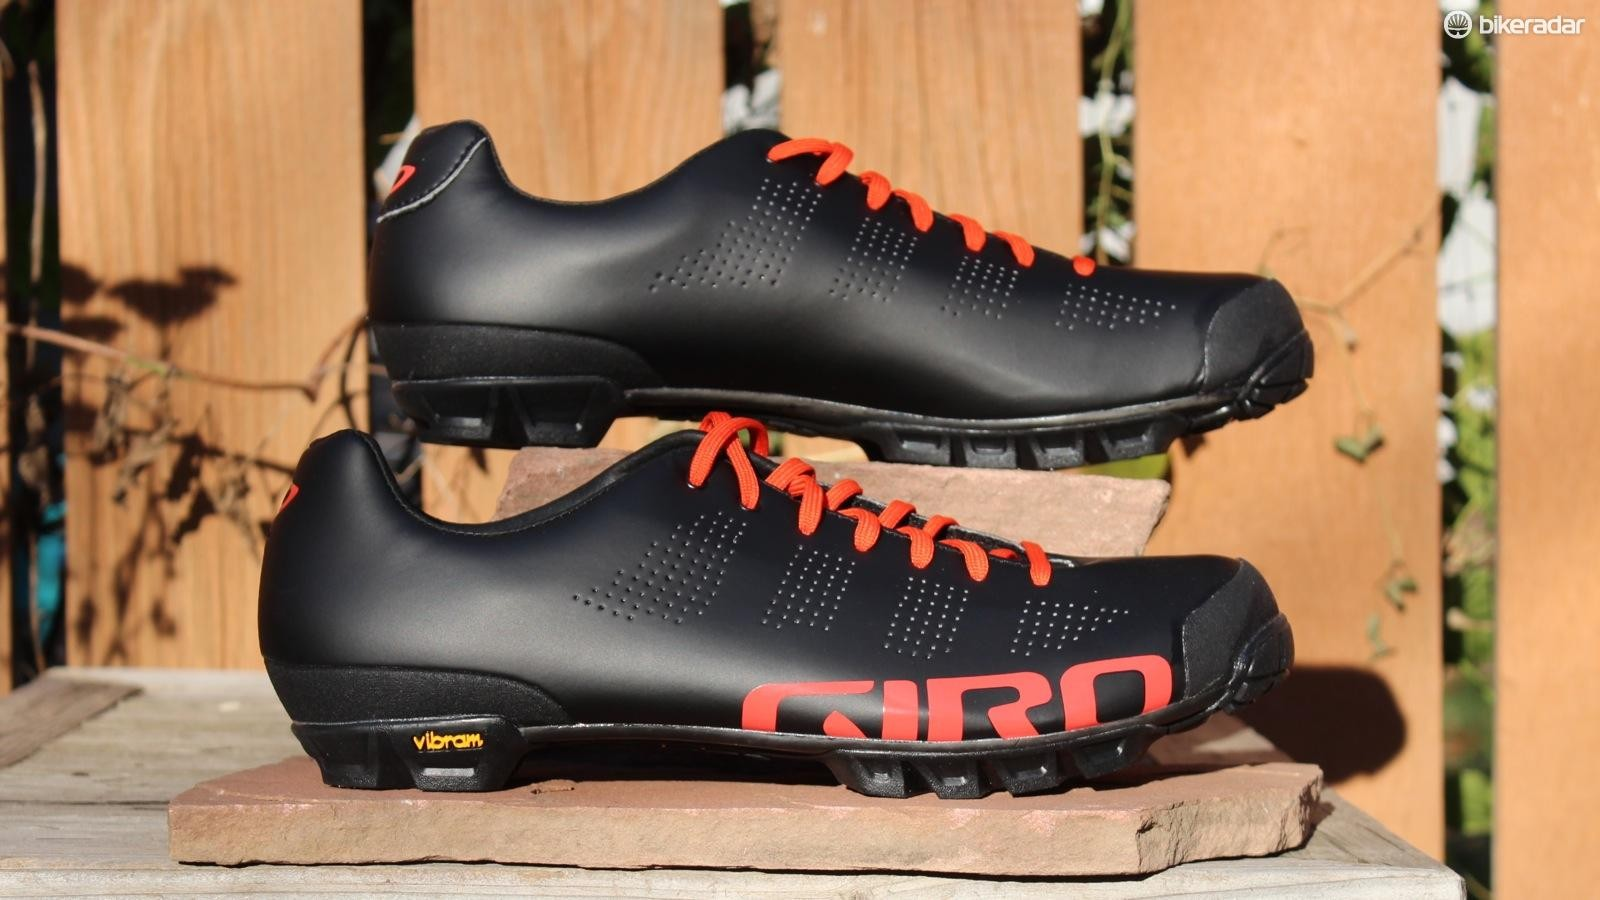 The Giro Empire VR90 lace-up mountain bike shoes